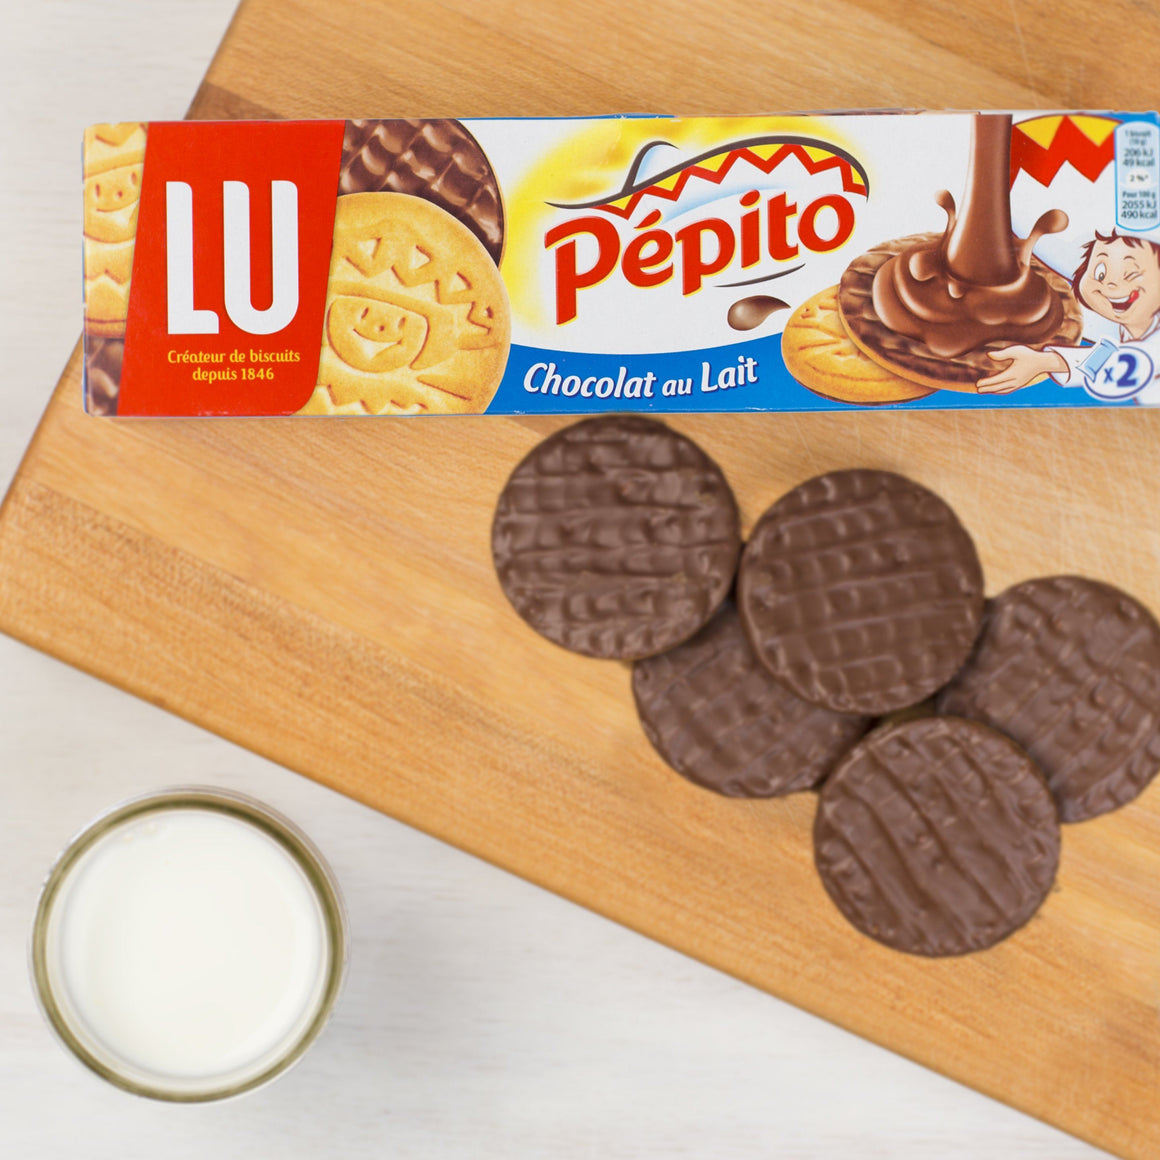 Pepito Chocolat au Lait - Milk Chocolate Shortbread Cookies